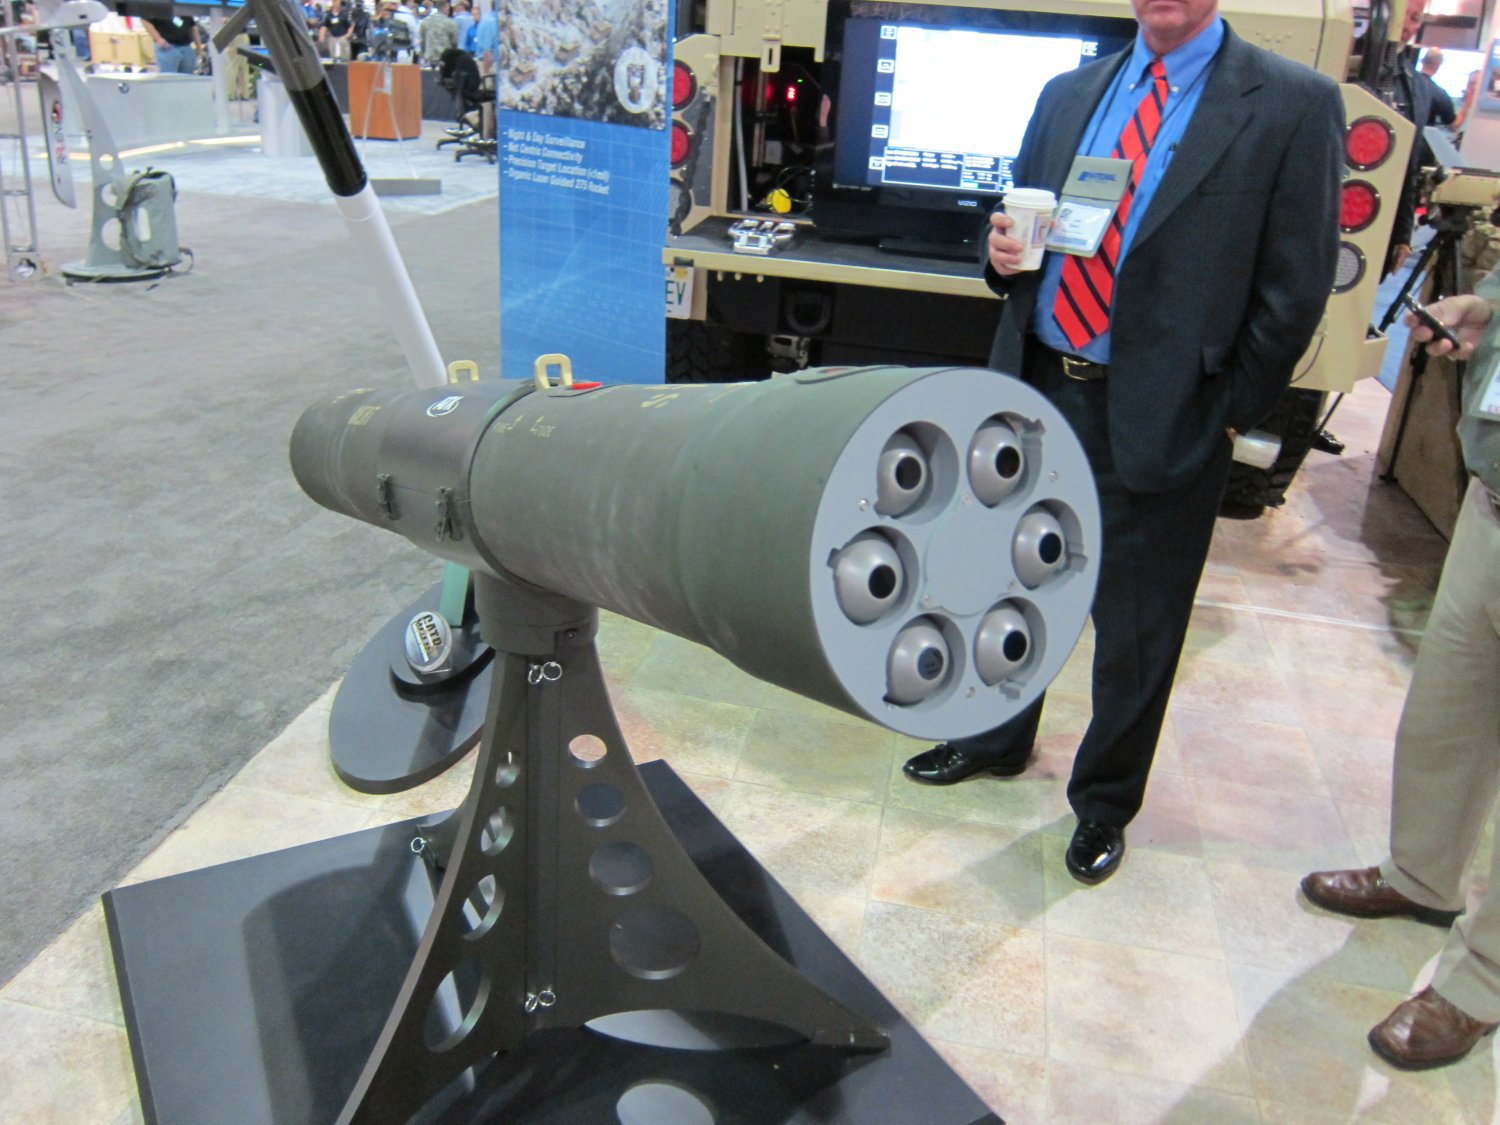 <!--:en-->Northrop Grumman/ATK VENOM Targeting Pod Armed with 6-Round GATR-L Tactical Precision-Guided (Laser-Guided) 2.75″/70mm Hydra Rocket Pod for Military Special Operations (SPECOPS)<!--:-->